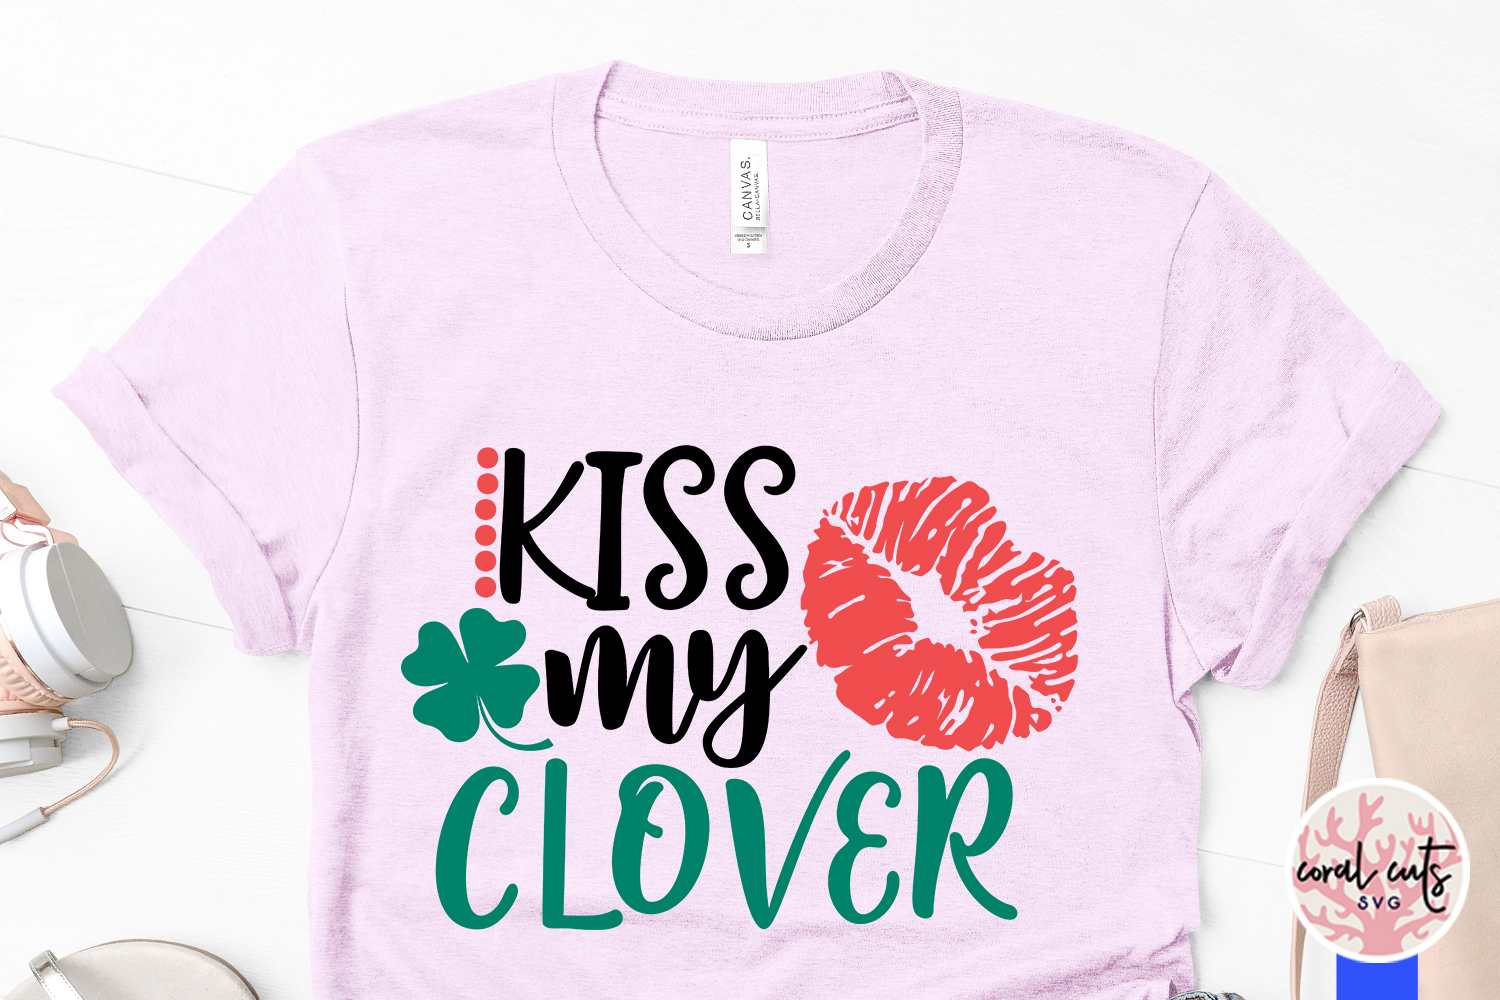 Kiss my clover - St. Patrick's Day SVG EPS DXF PNG example image 3